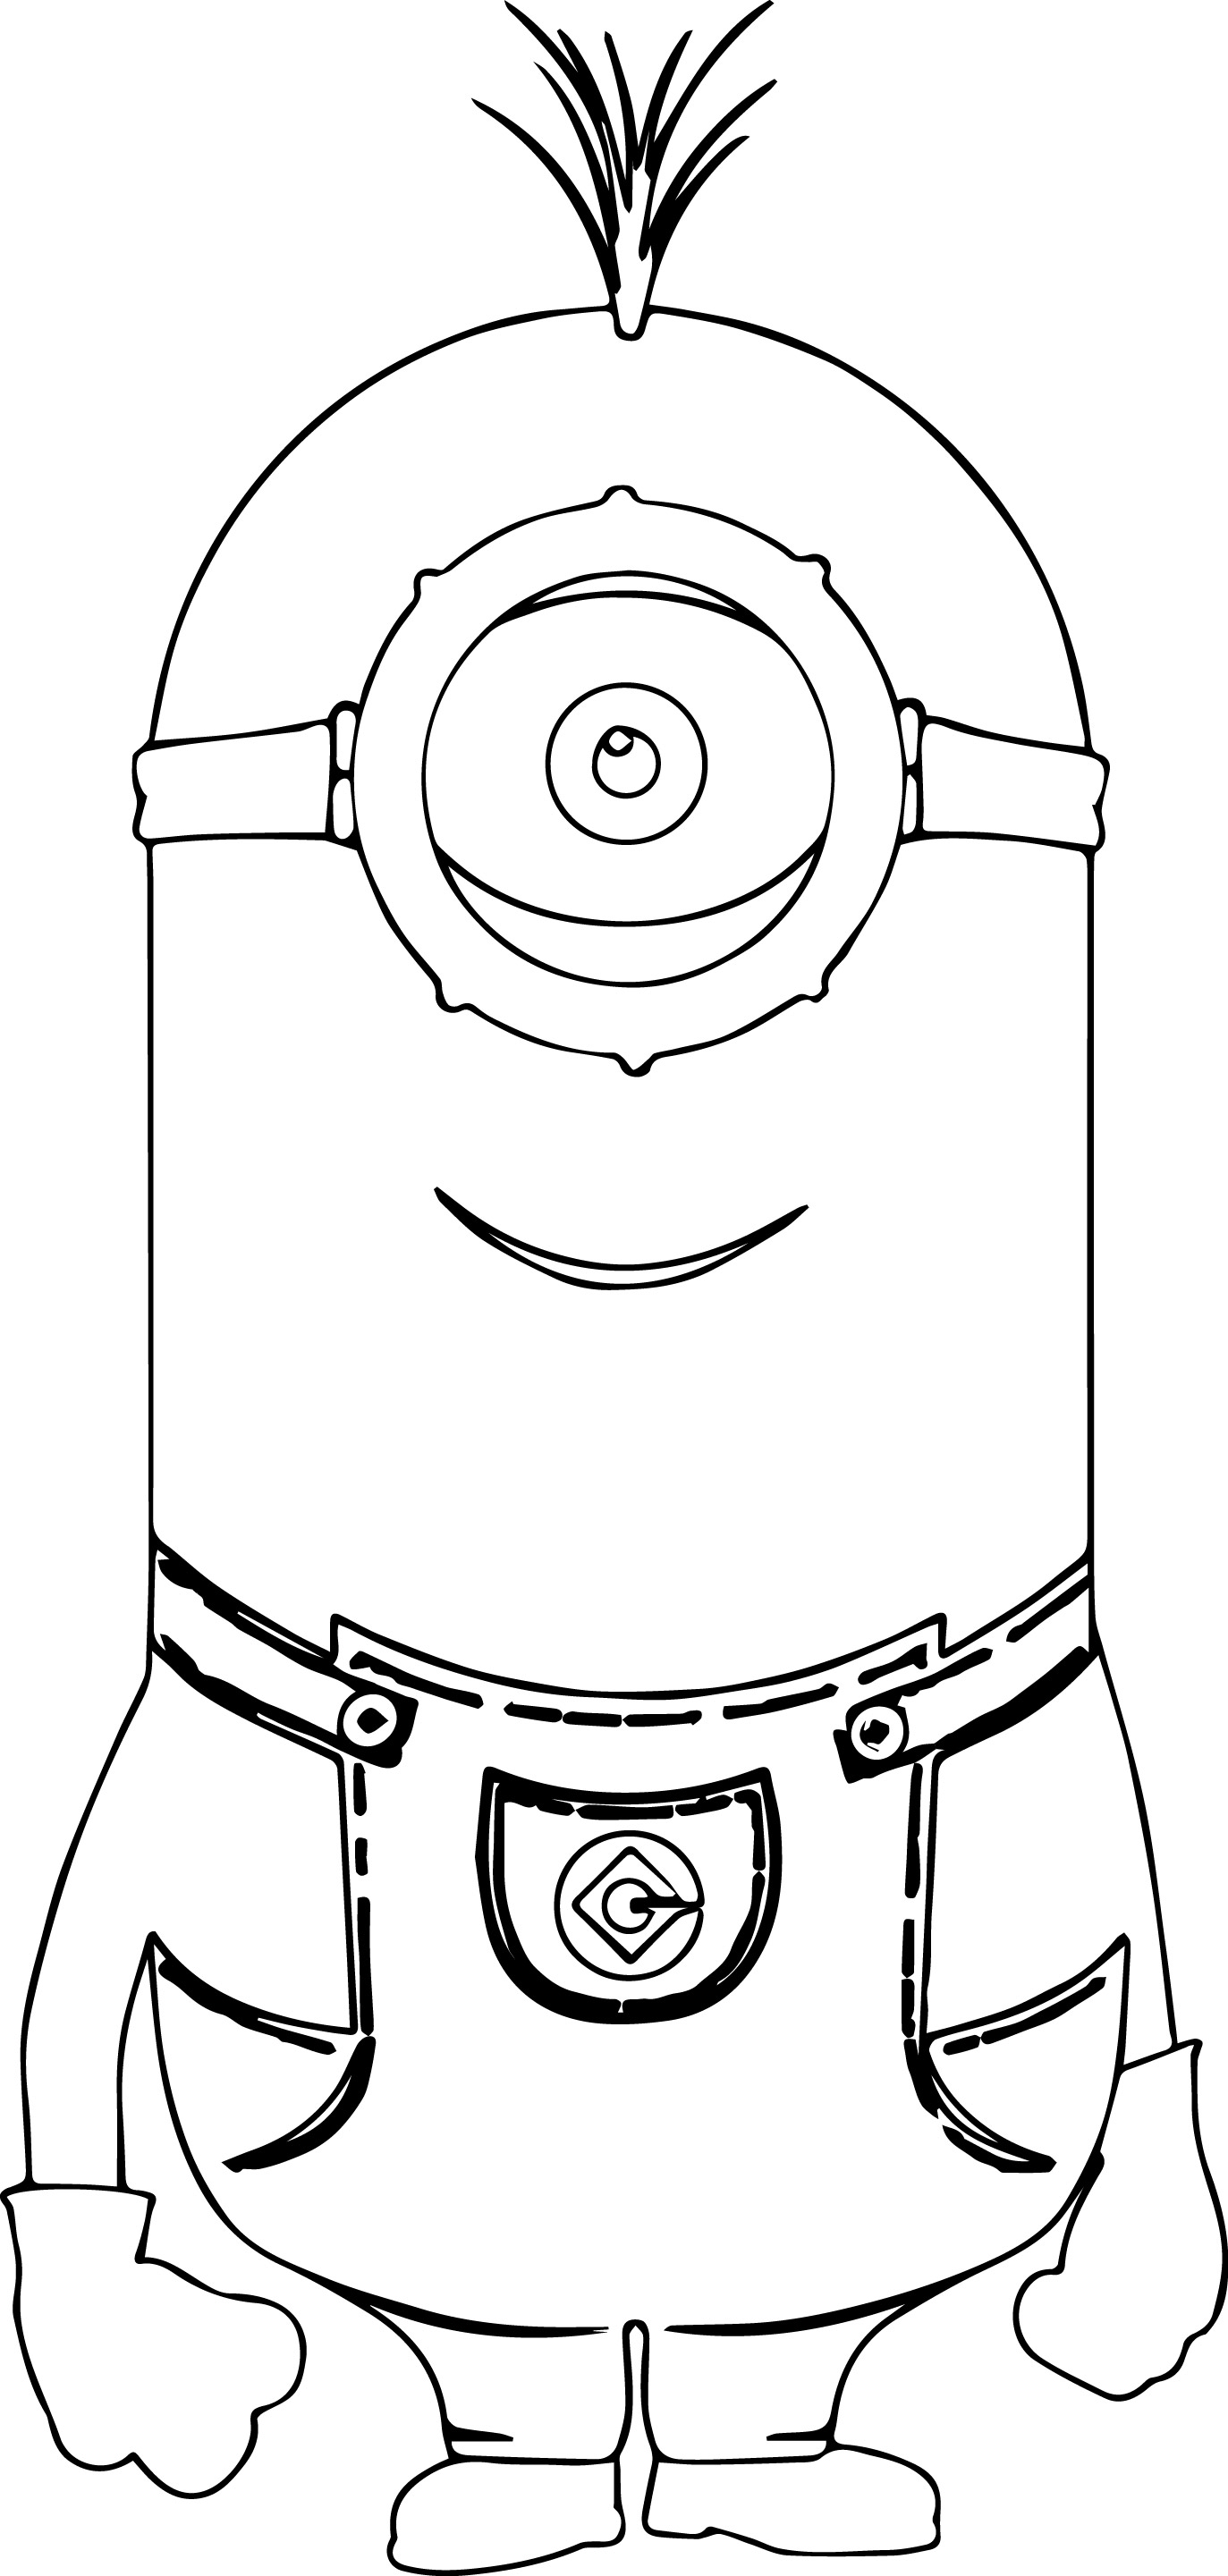 minion tim coloring pages - photo#14